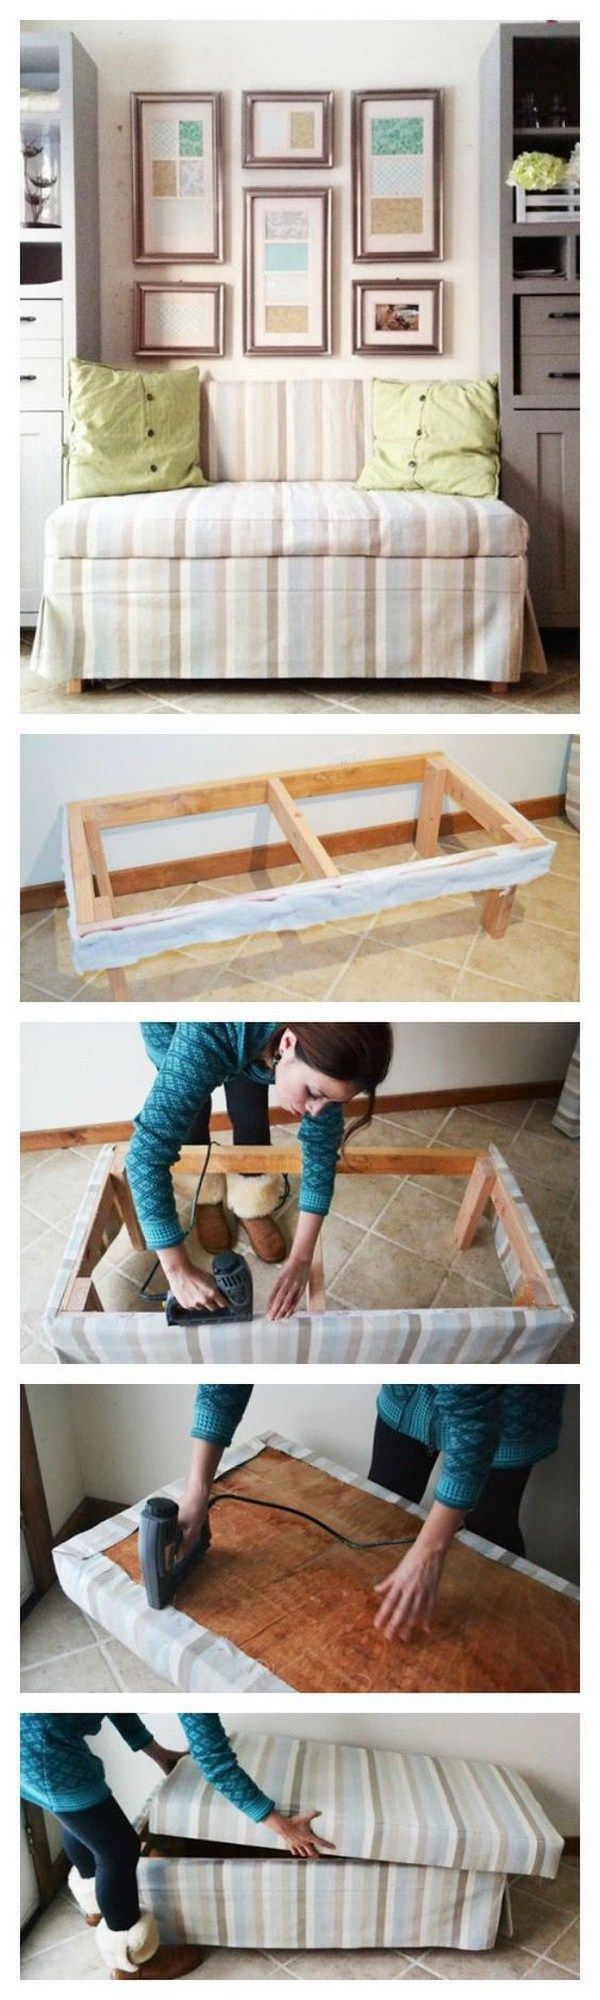 Table success do it yourself home projects from ana white diy 85 - 30 Creative And Easy Diy Furniture Hacks